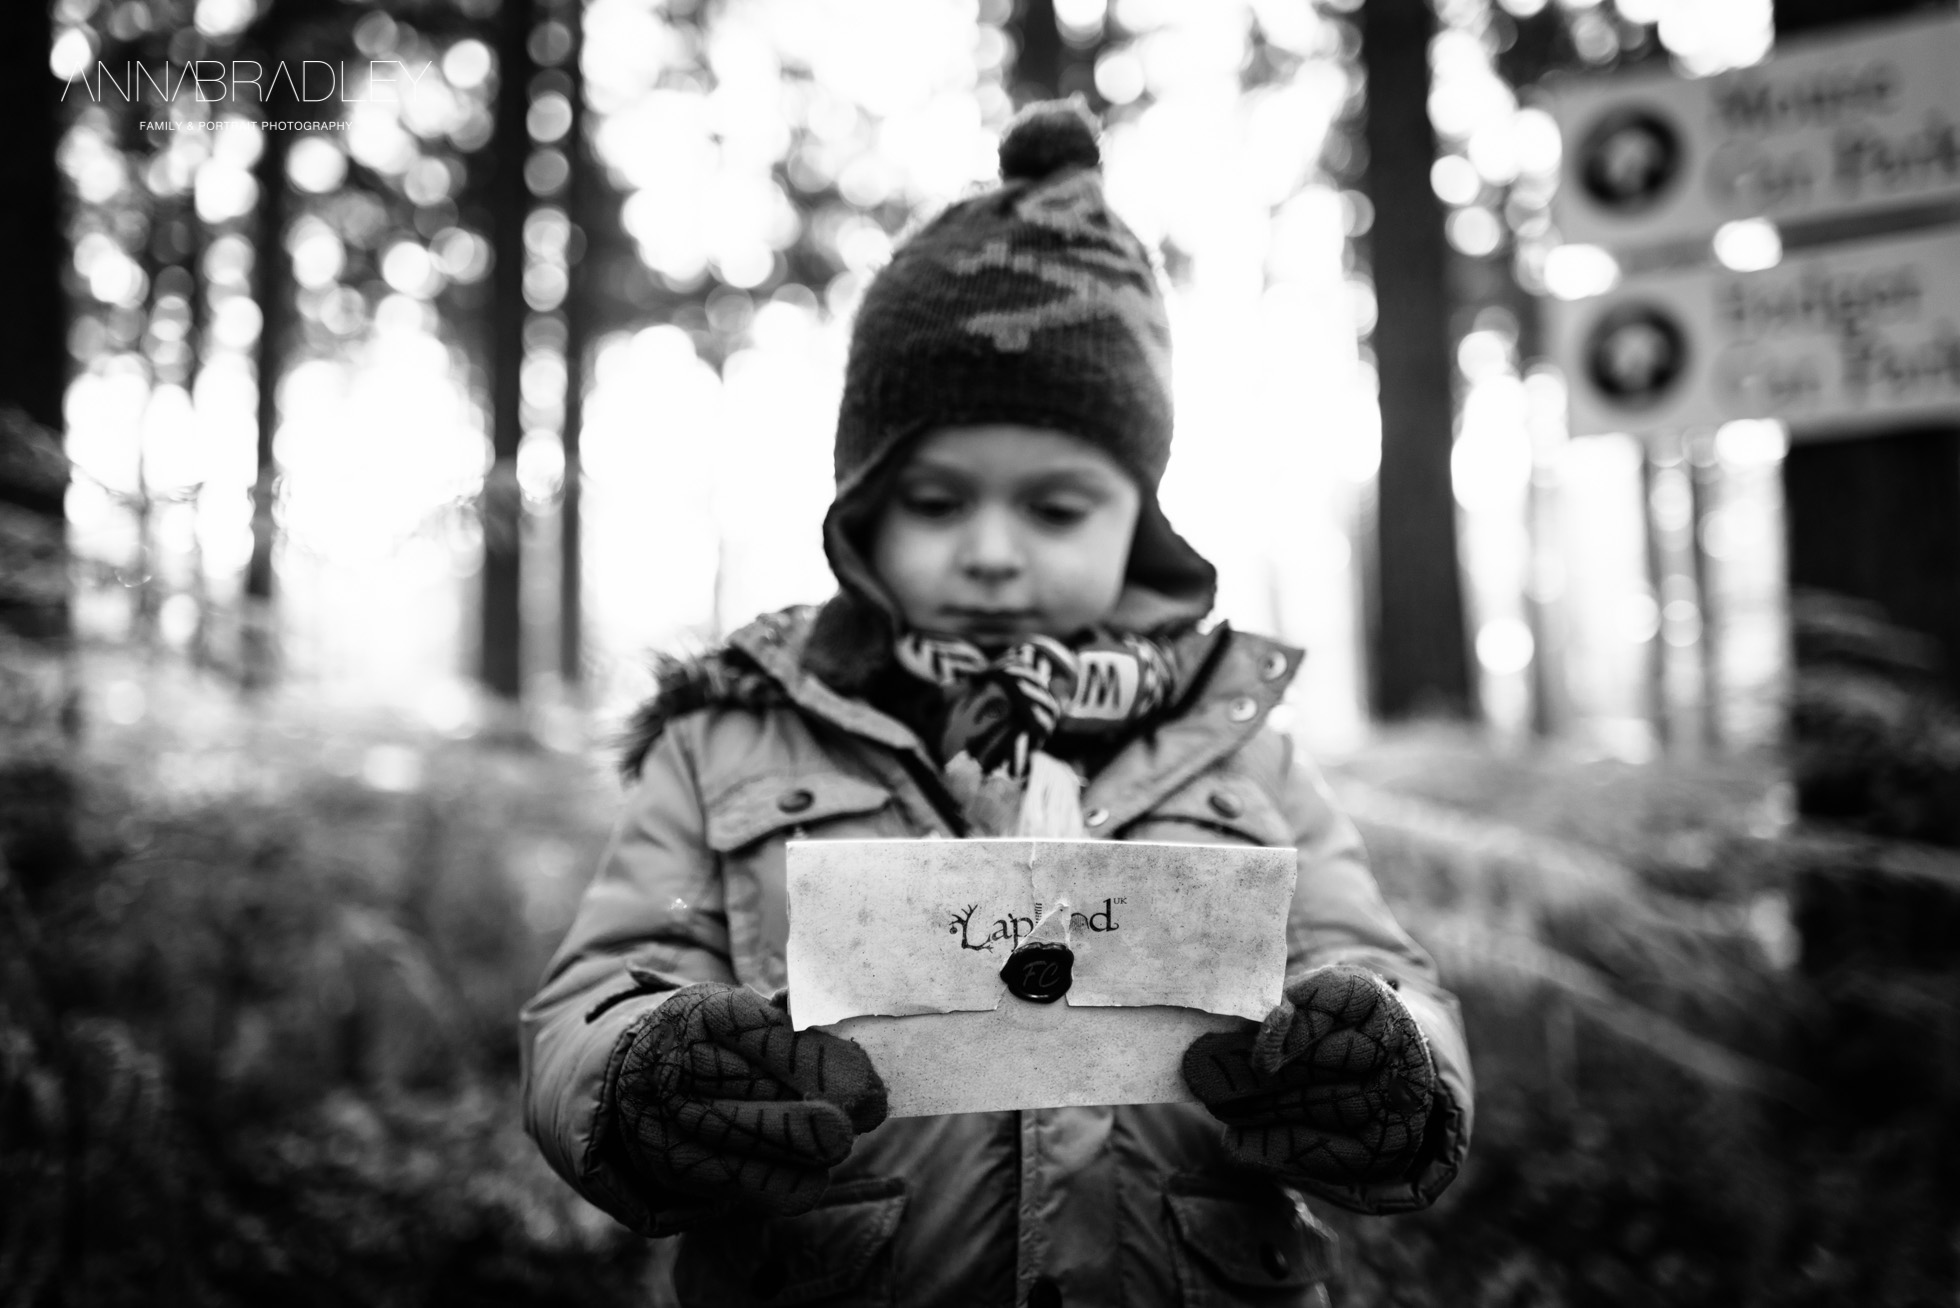 Letter from Santa black and white photograph by Anna Bradley